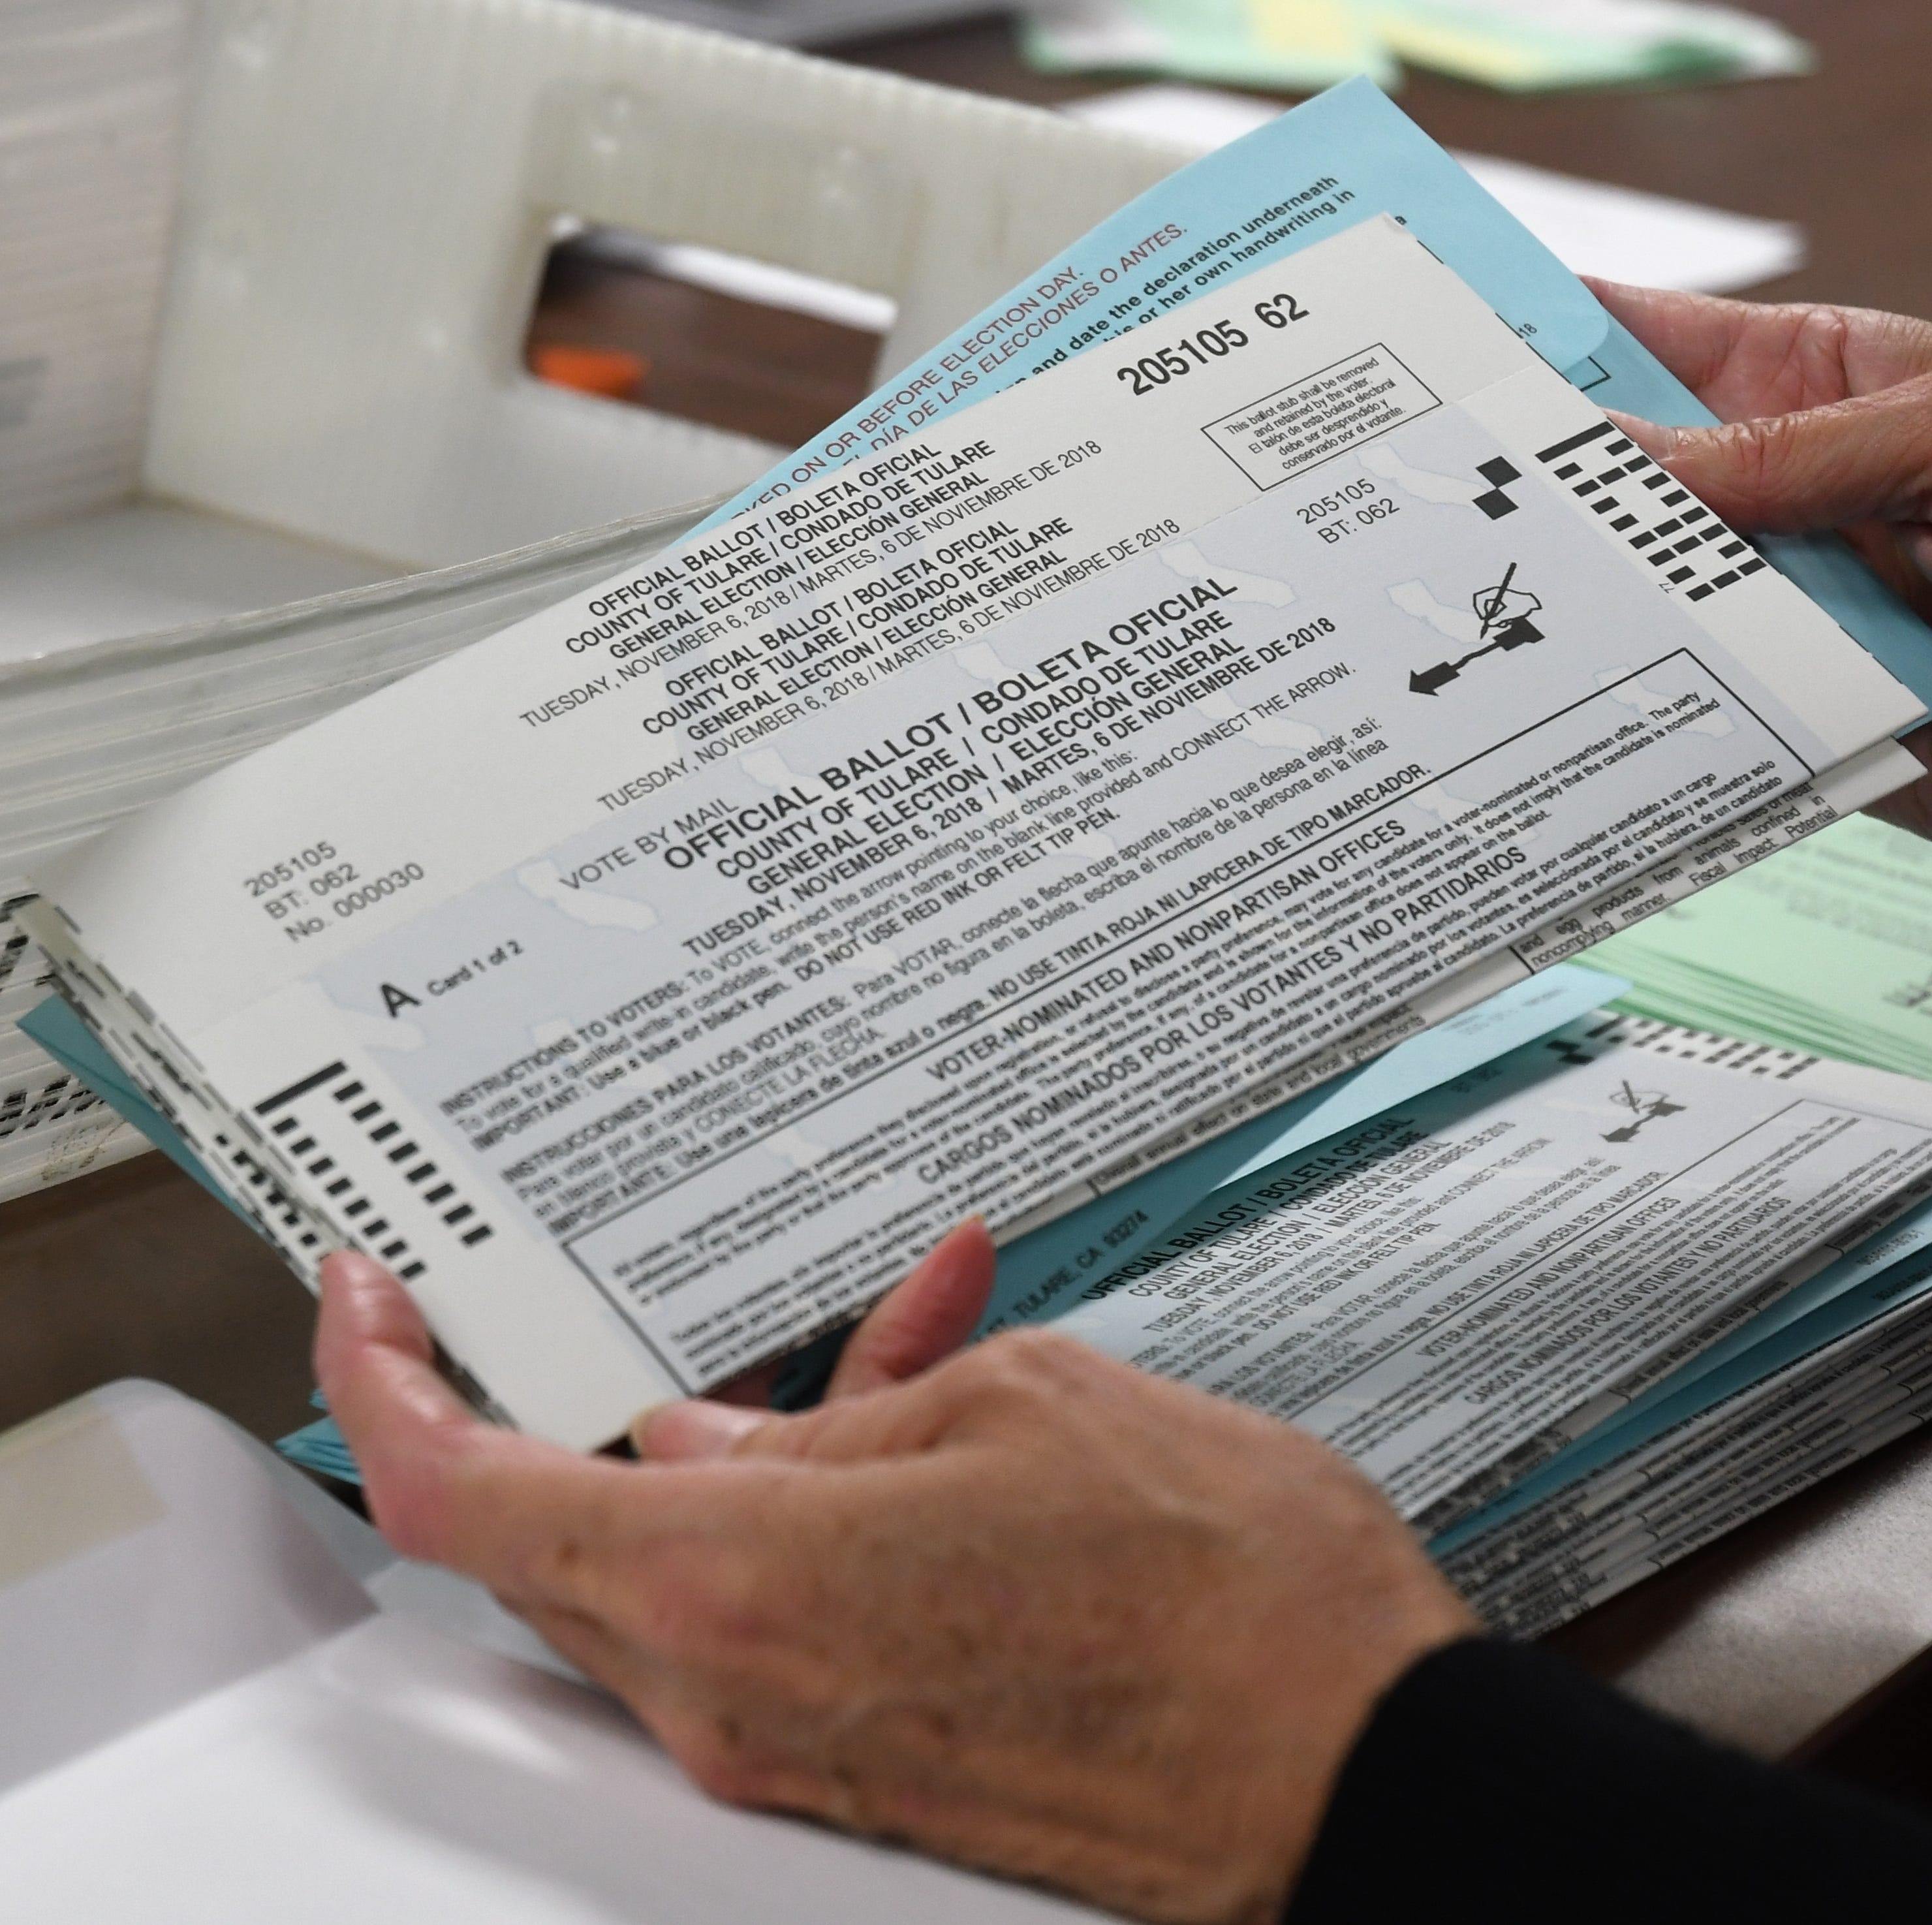 115,000 mail ballots to be issued in Tulare County this election. Have you received yours?